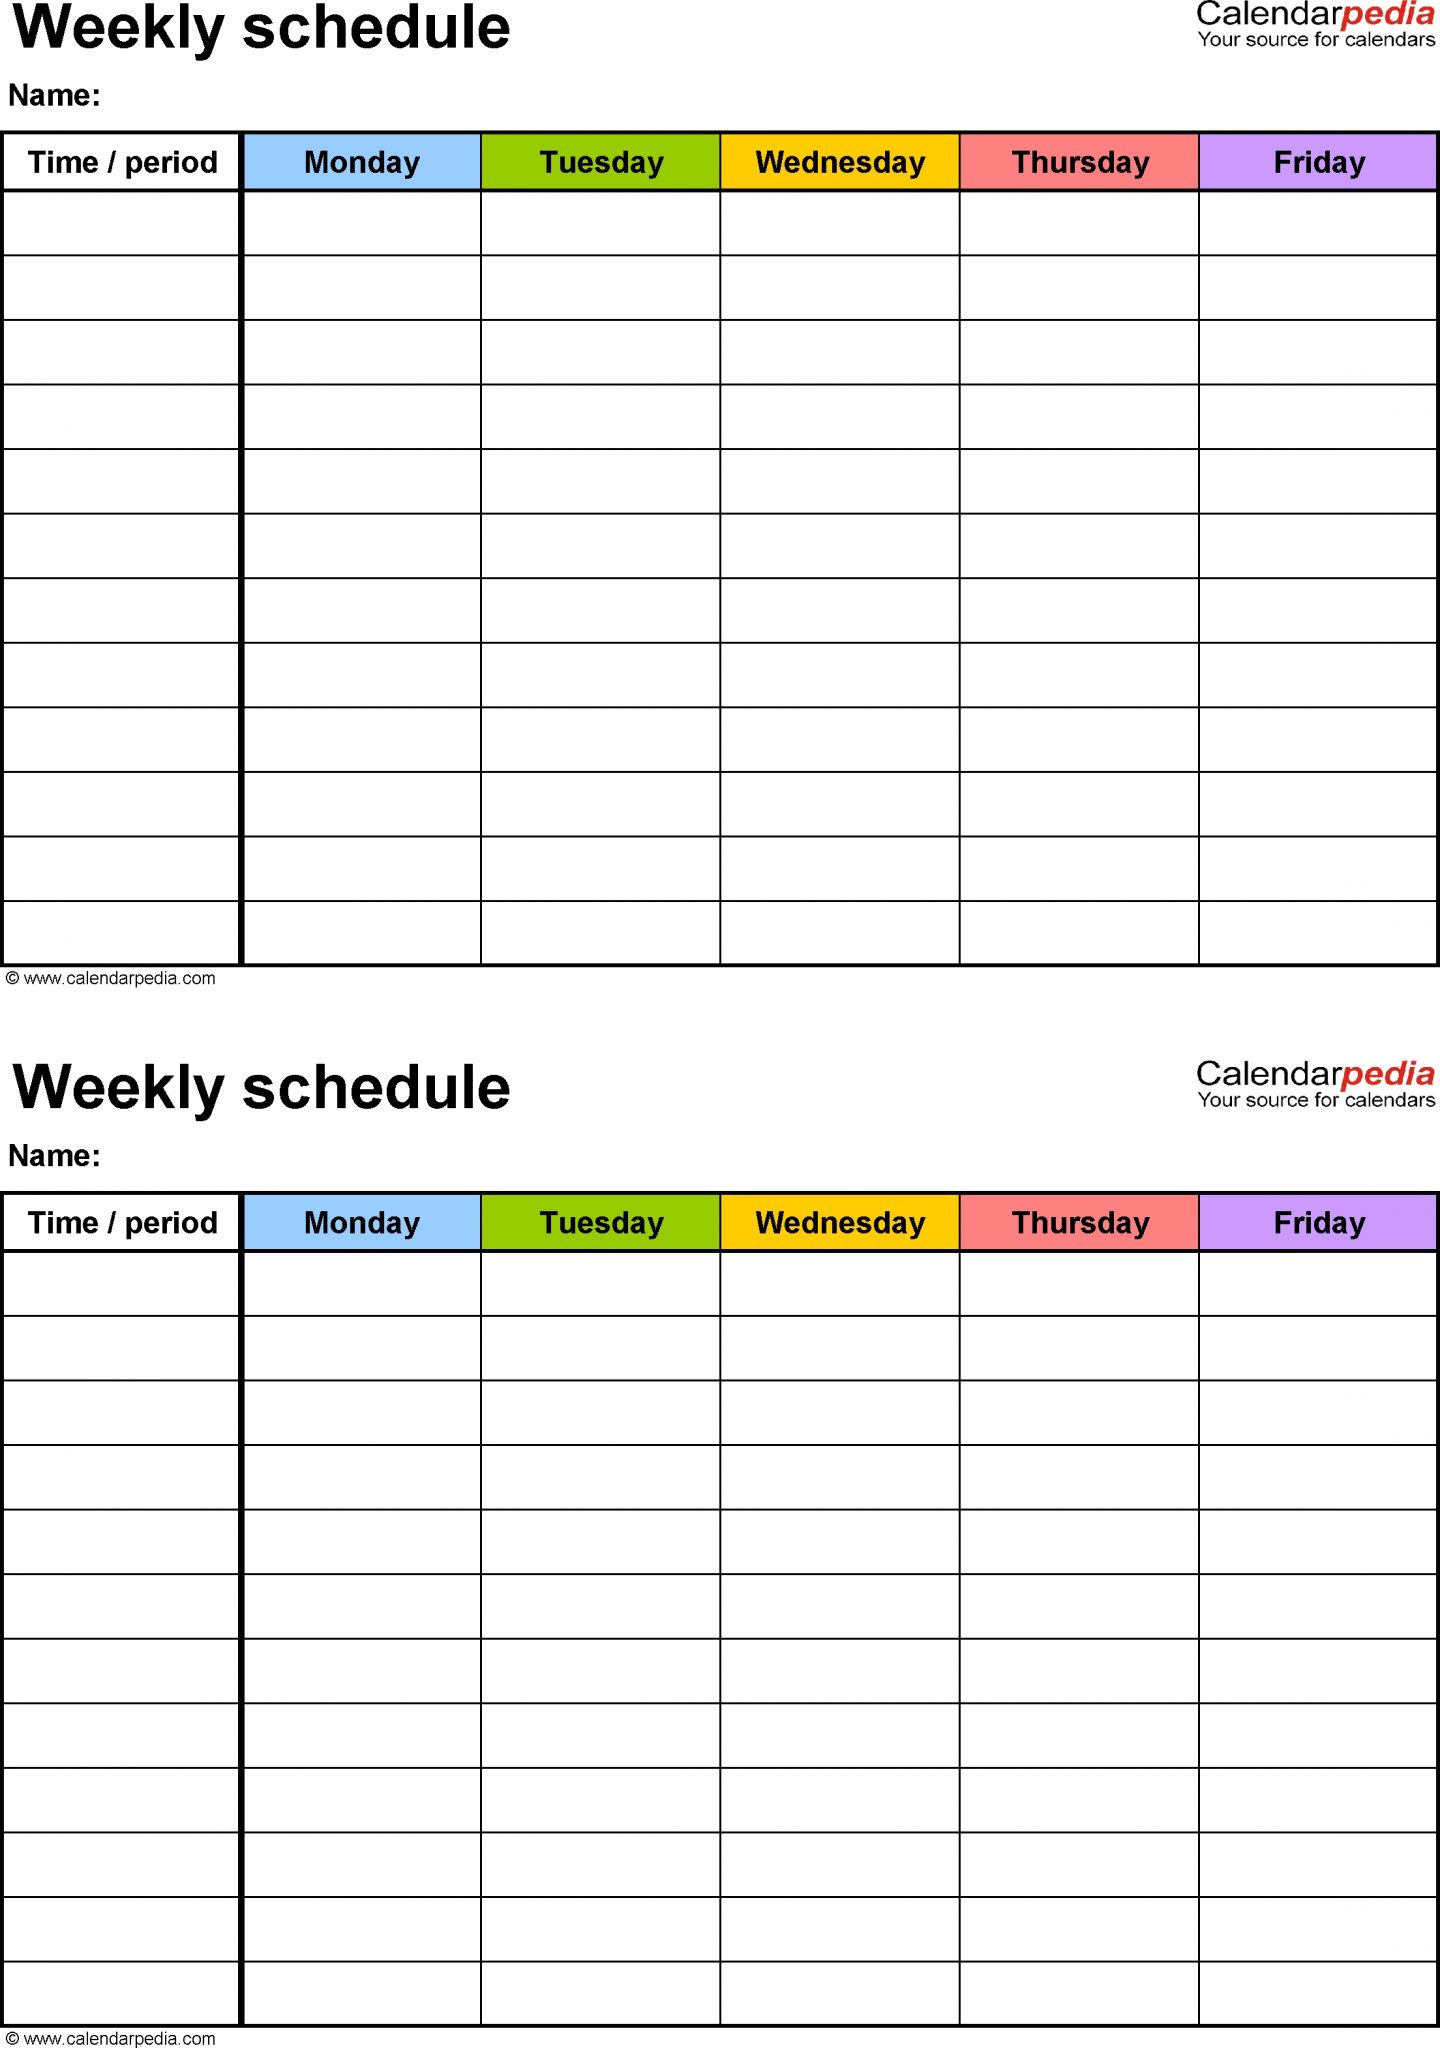 Free Printable Weekly Schedule Monday-Fridays :-Free Printable Schedule Mon To Friday